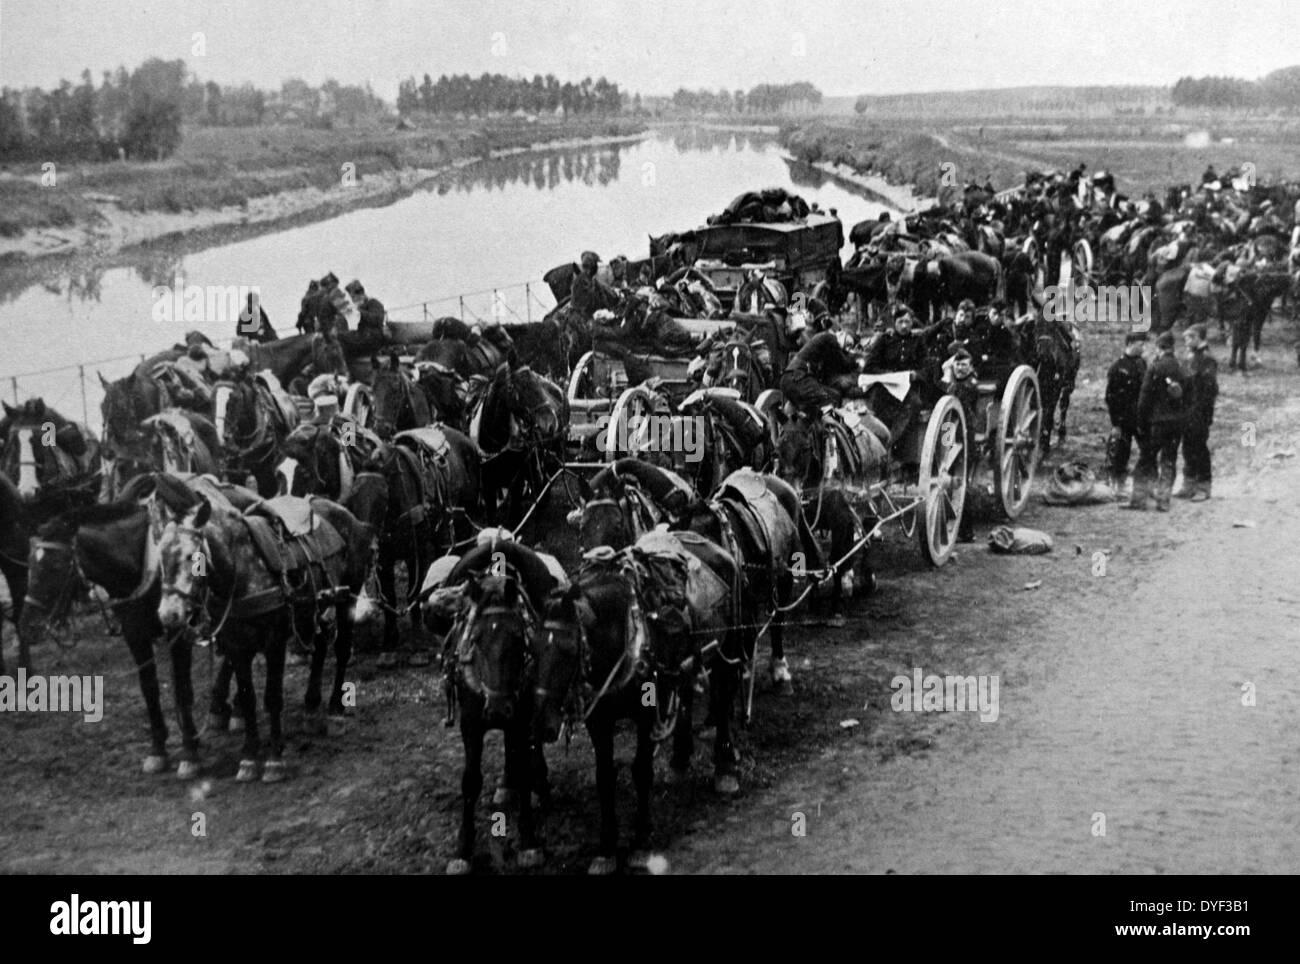 A photograph from the First World War, showing troops on horseback along a riverbank. - Stock Image